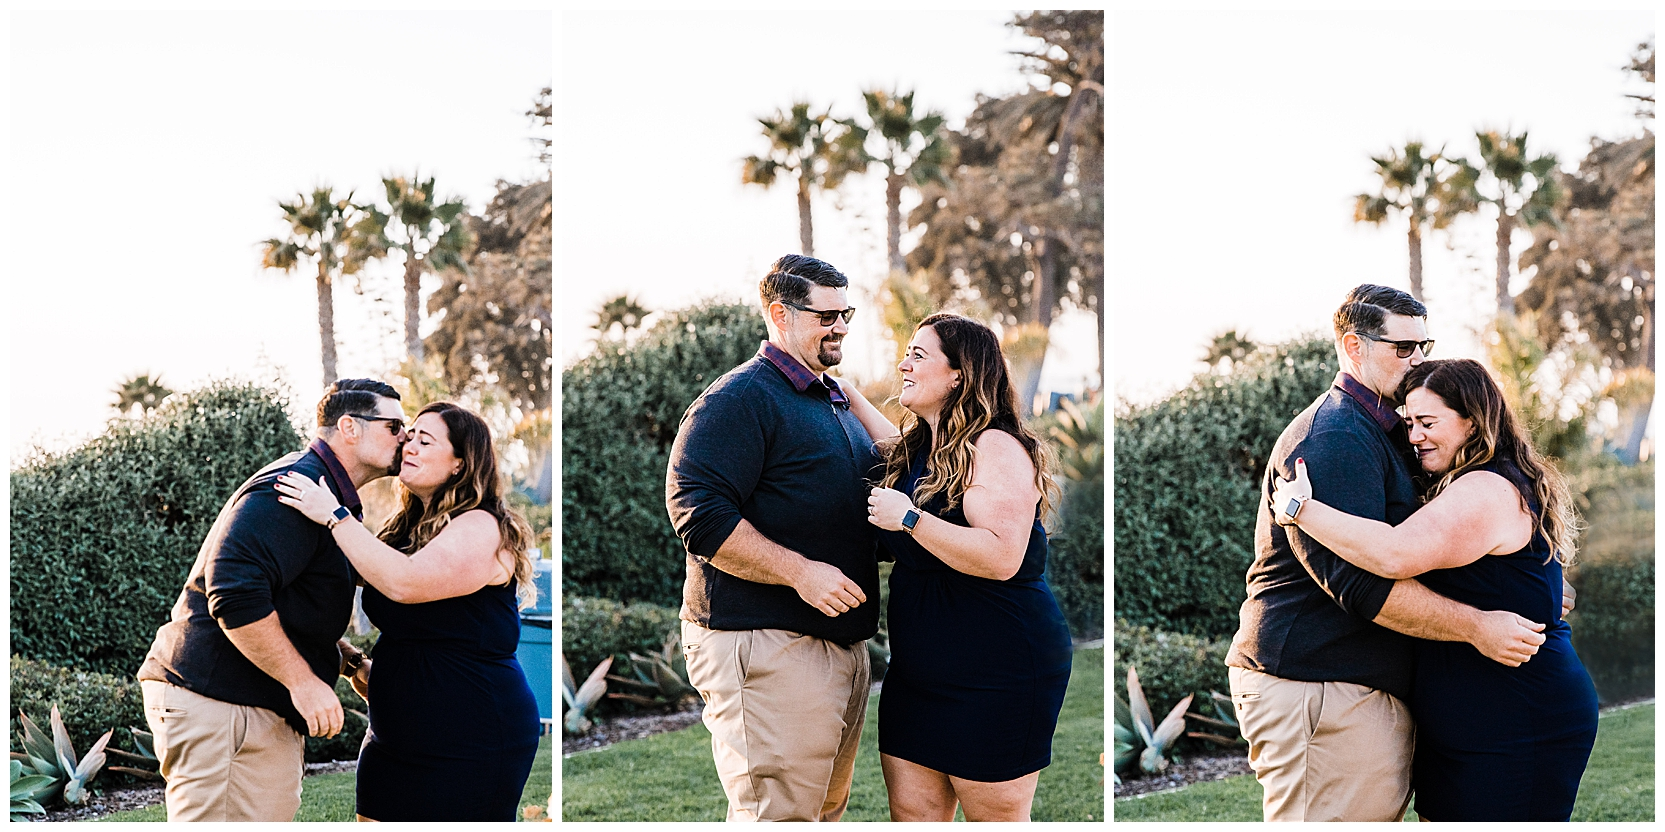 jessicafredericks_huntingtonbeach_proposal_sunset_engagement_0011.jpg